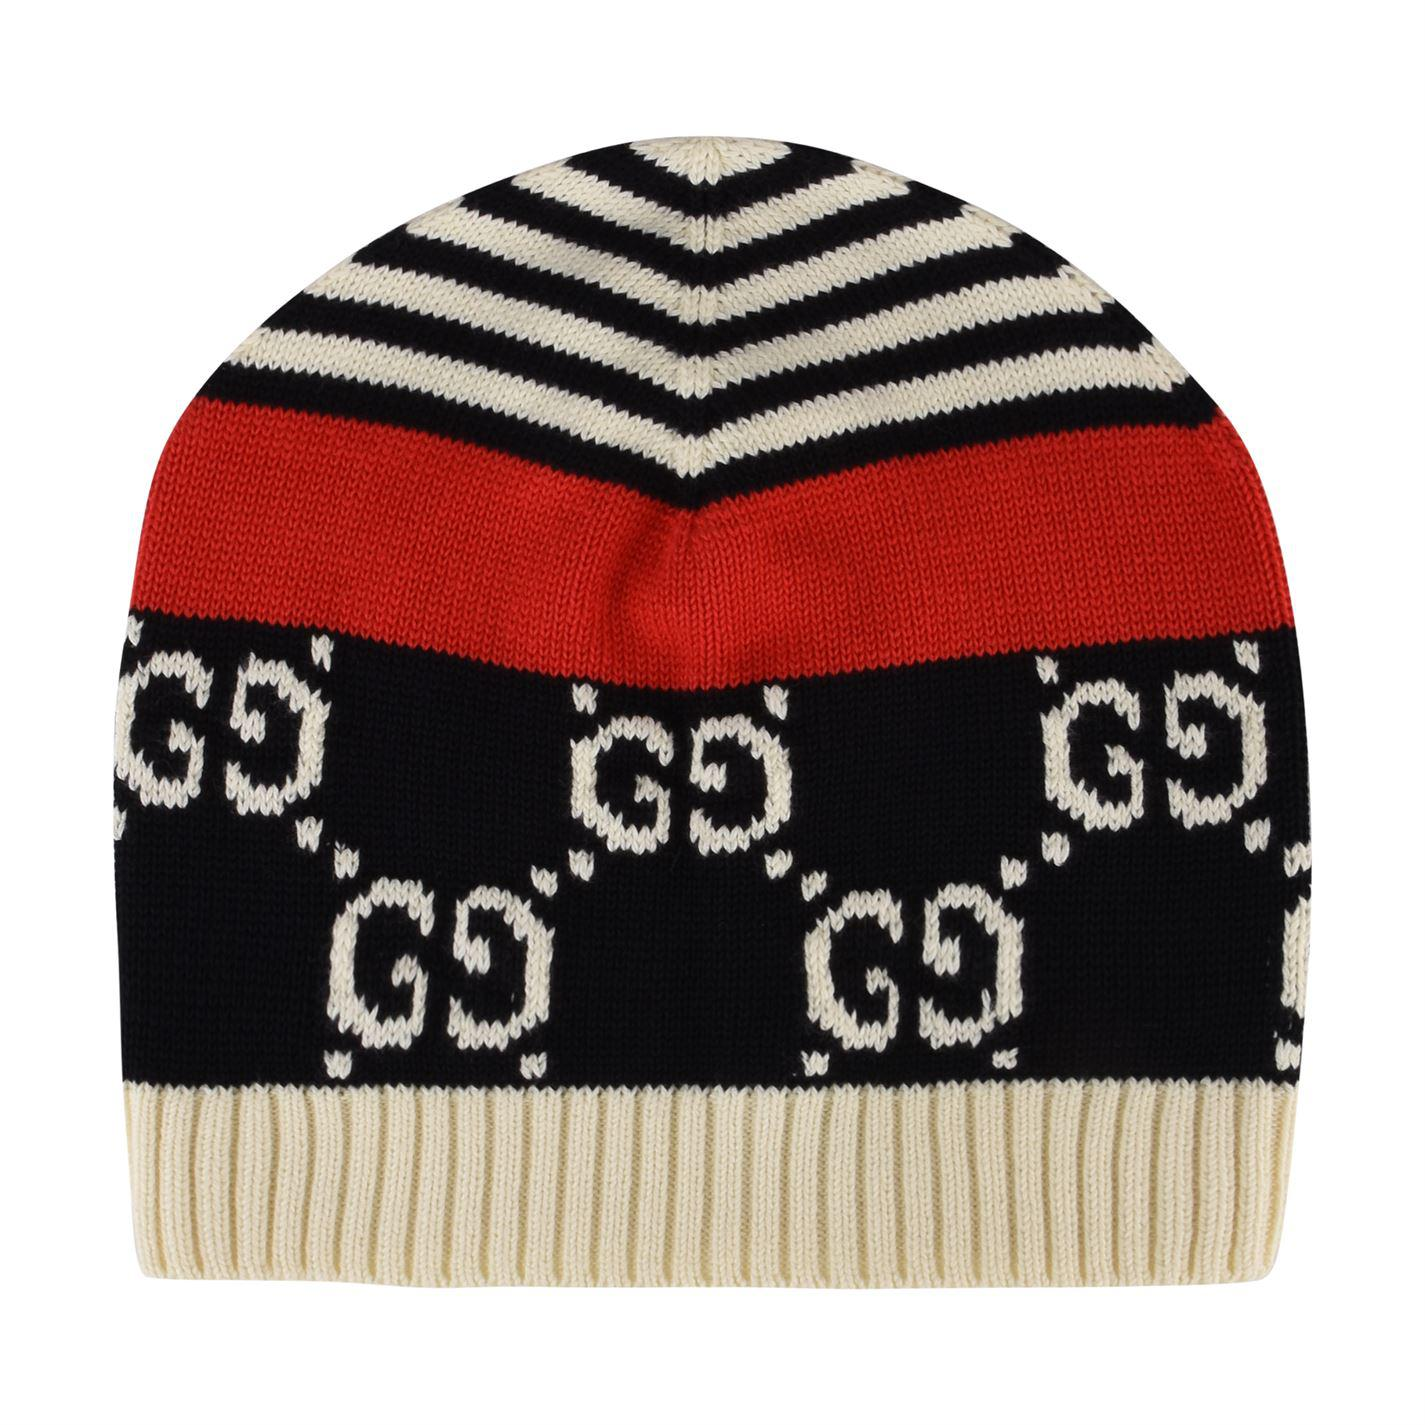 Gucci - Multicolor Gg Cotton Beanie Hat for Men - Lyst. View fullscreen 596c85553ab9